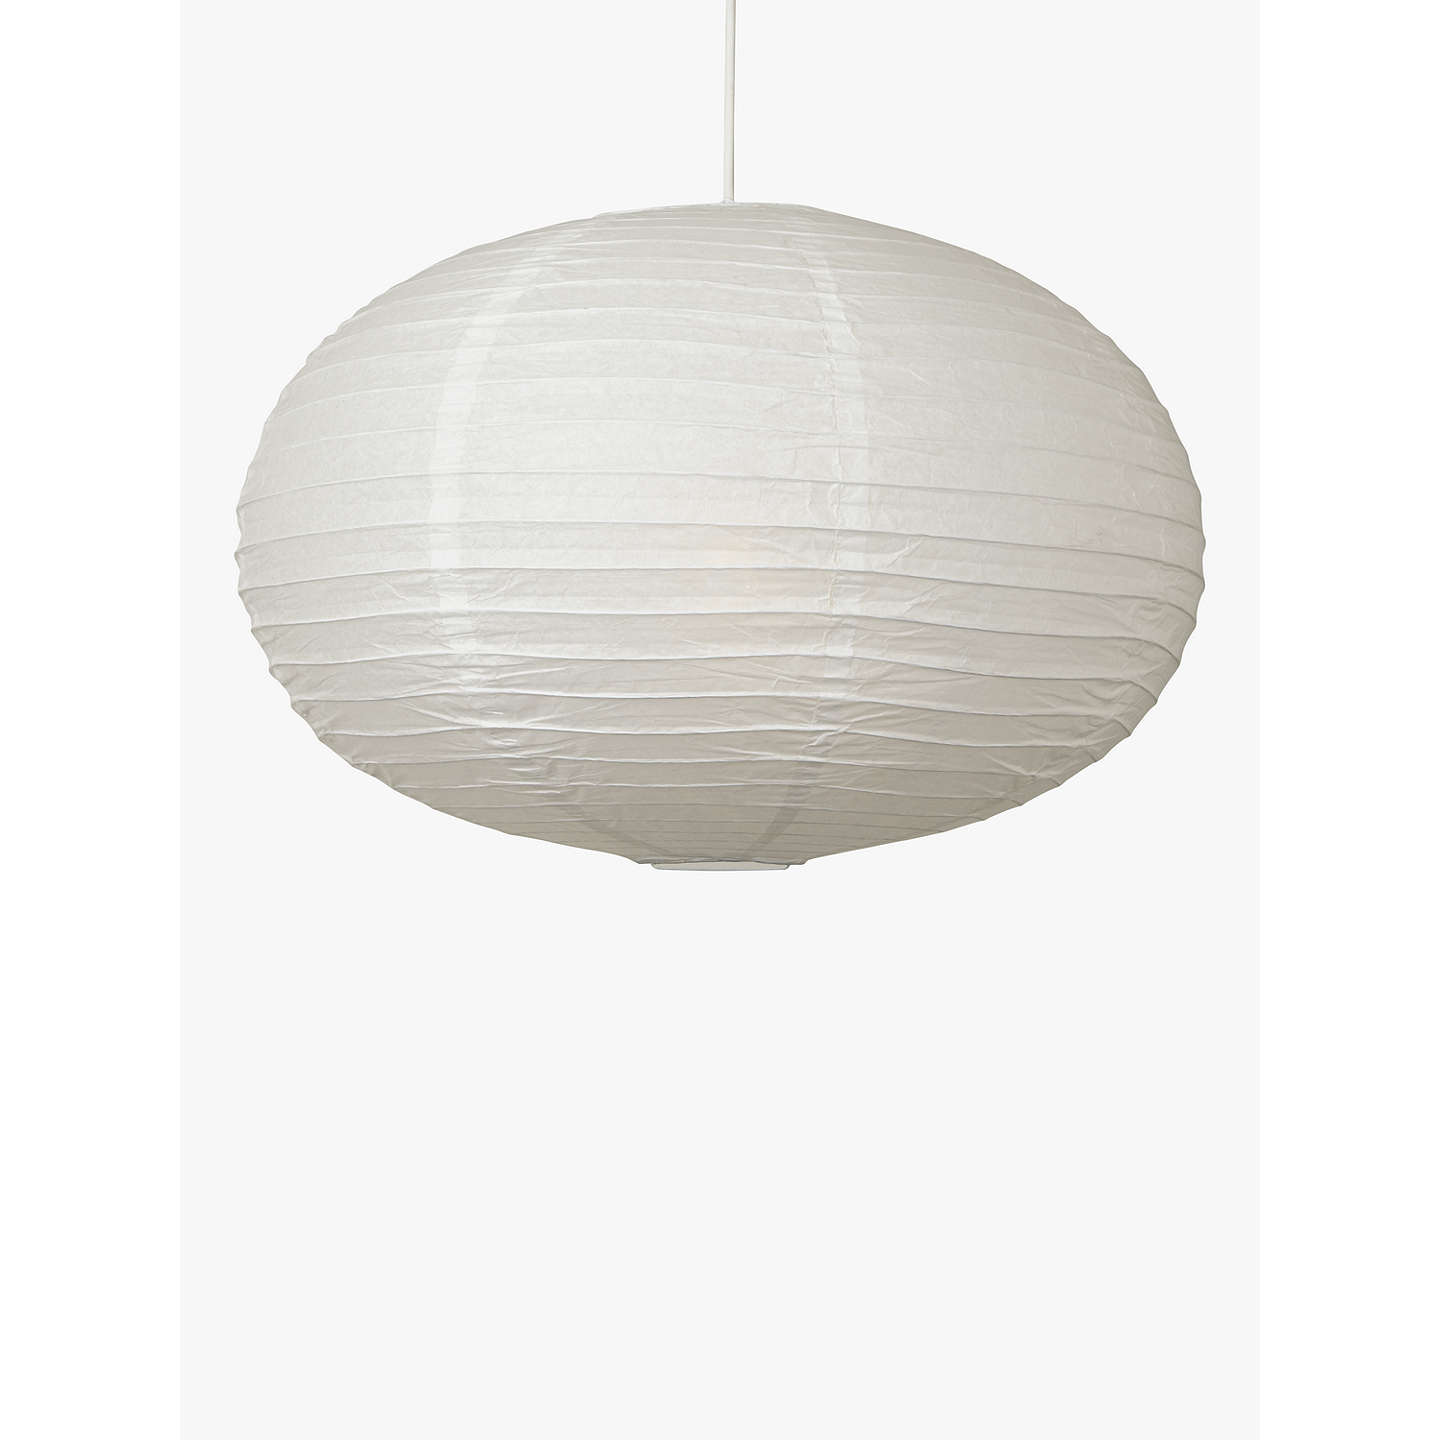 House by john lewis easy to fit paper oval ceiling light white at buyhouse by john lewis easy to fit paper oval ceiling light white online mozeypictures Image collections